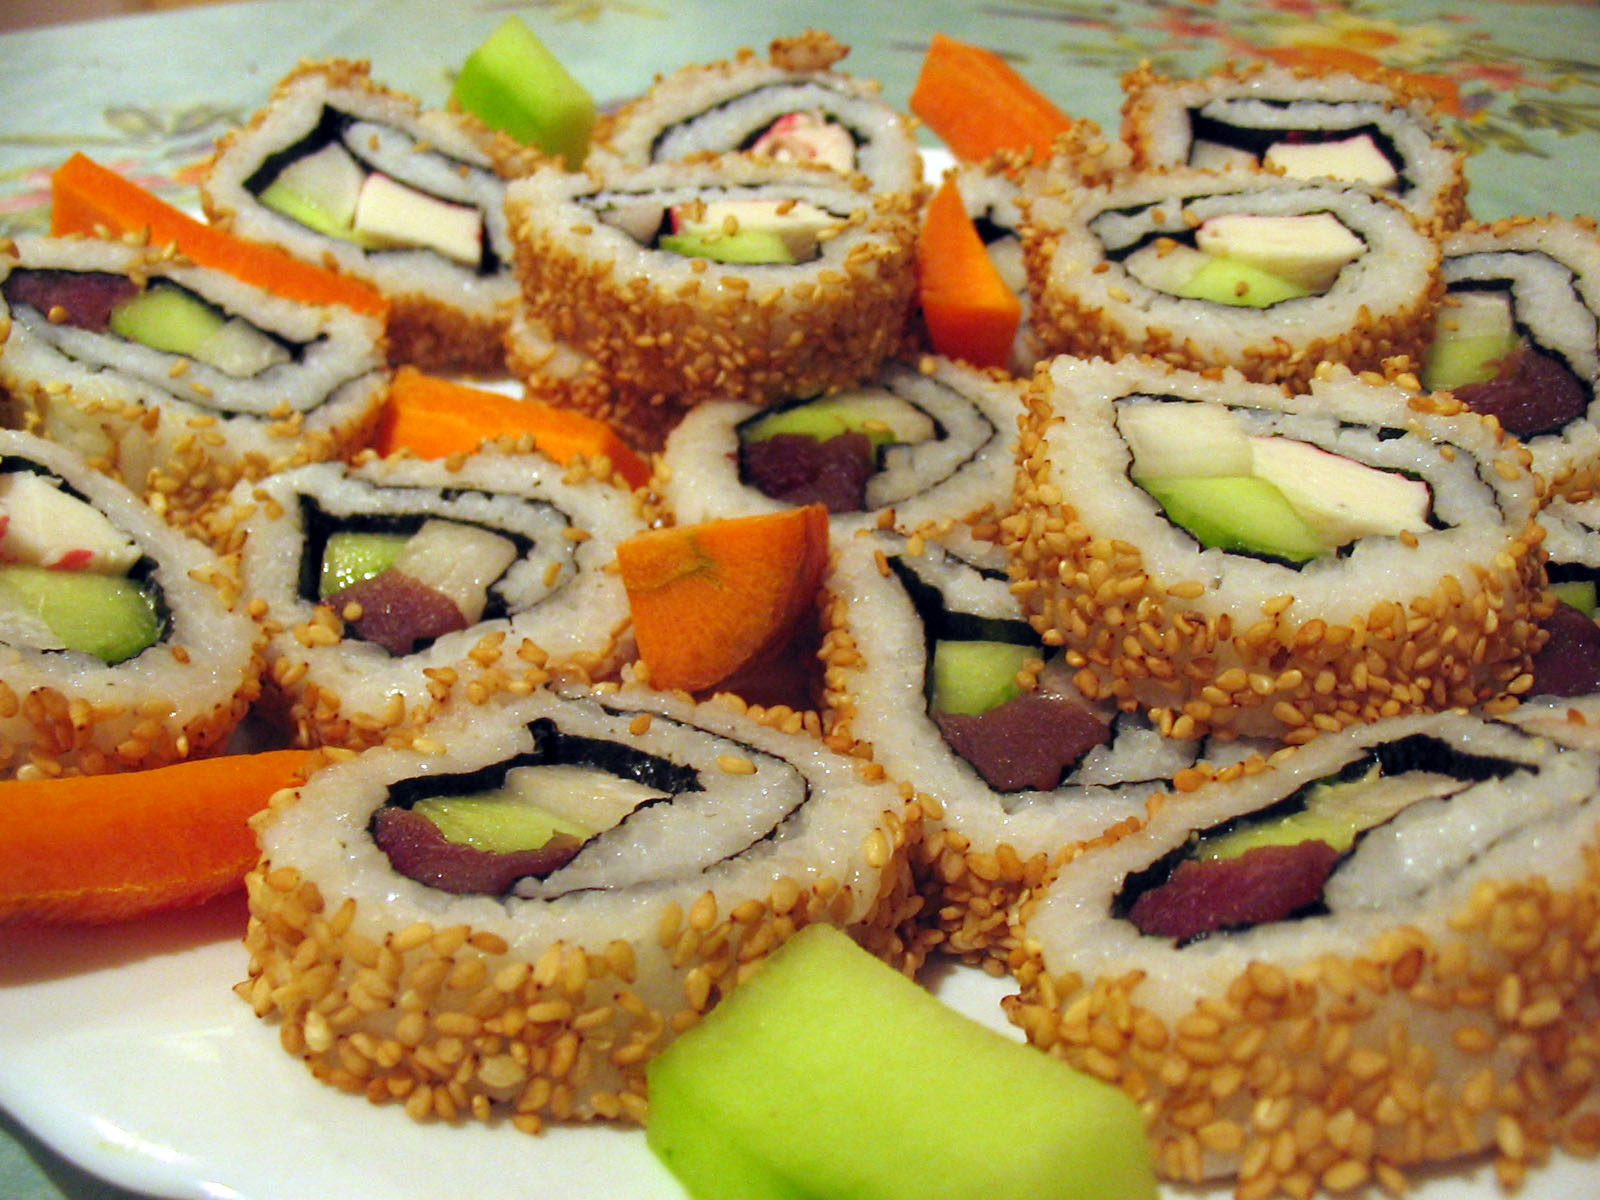 This is an image of sushi